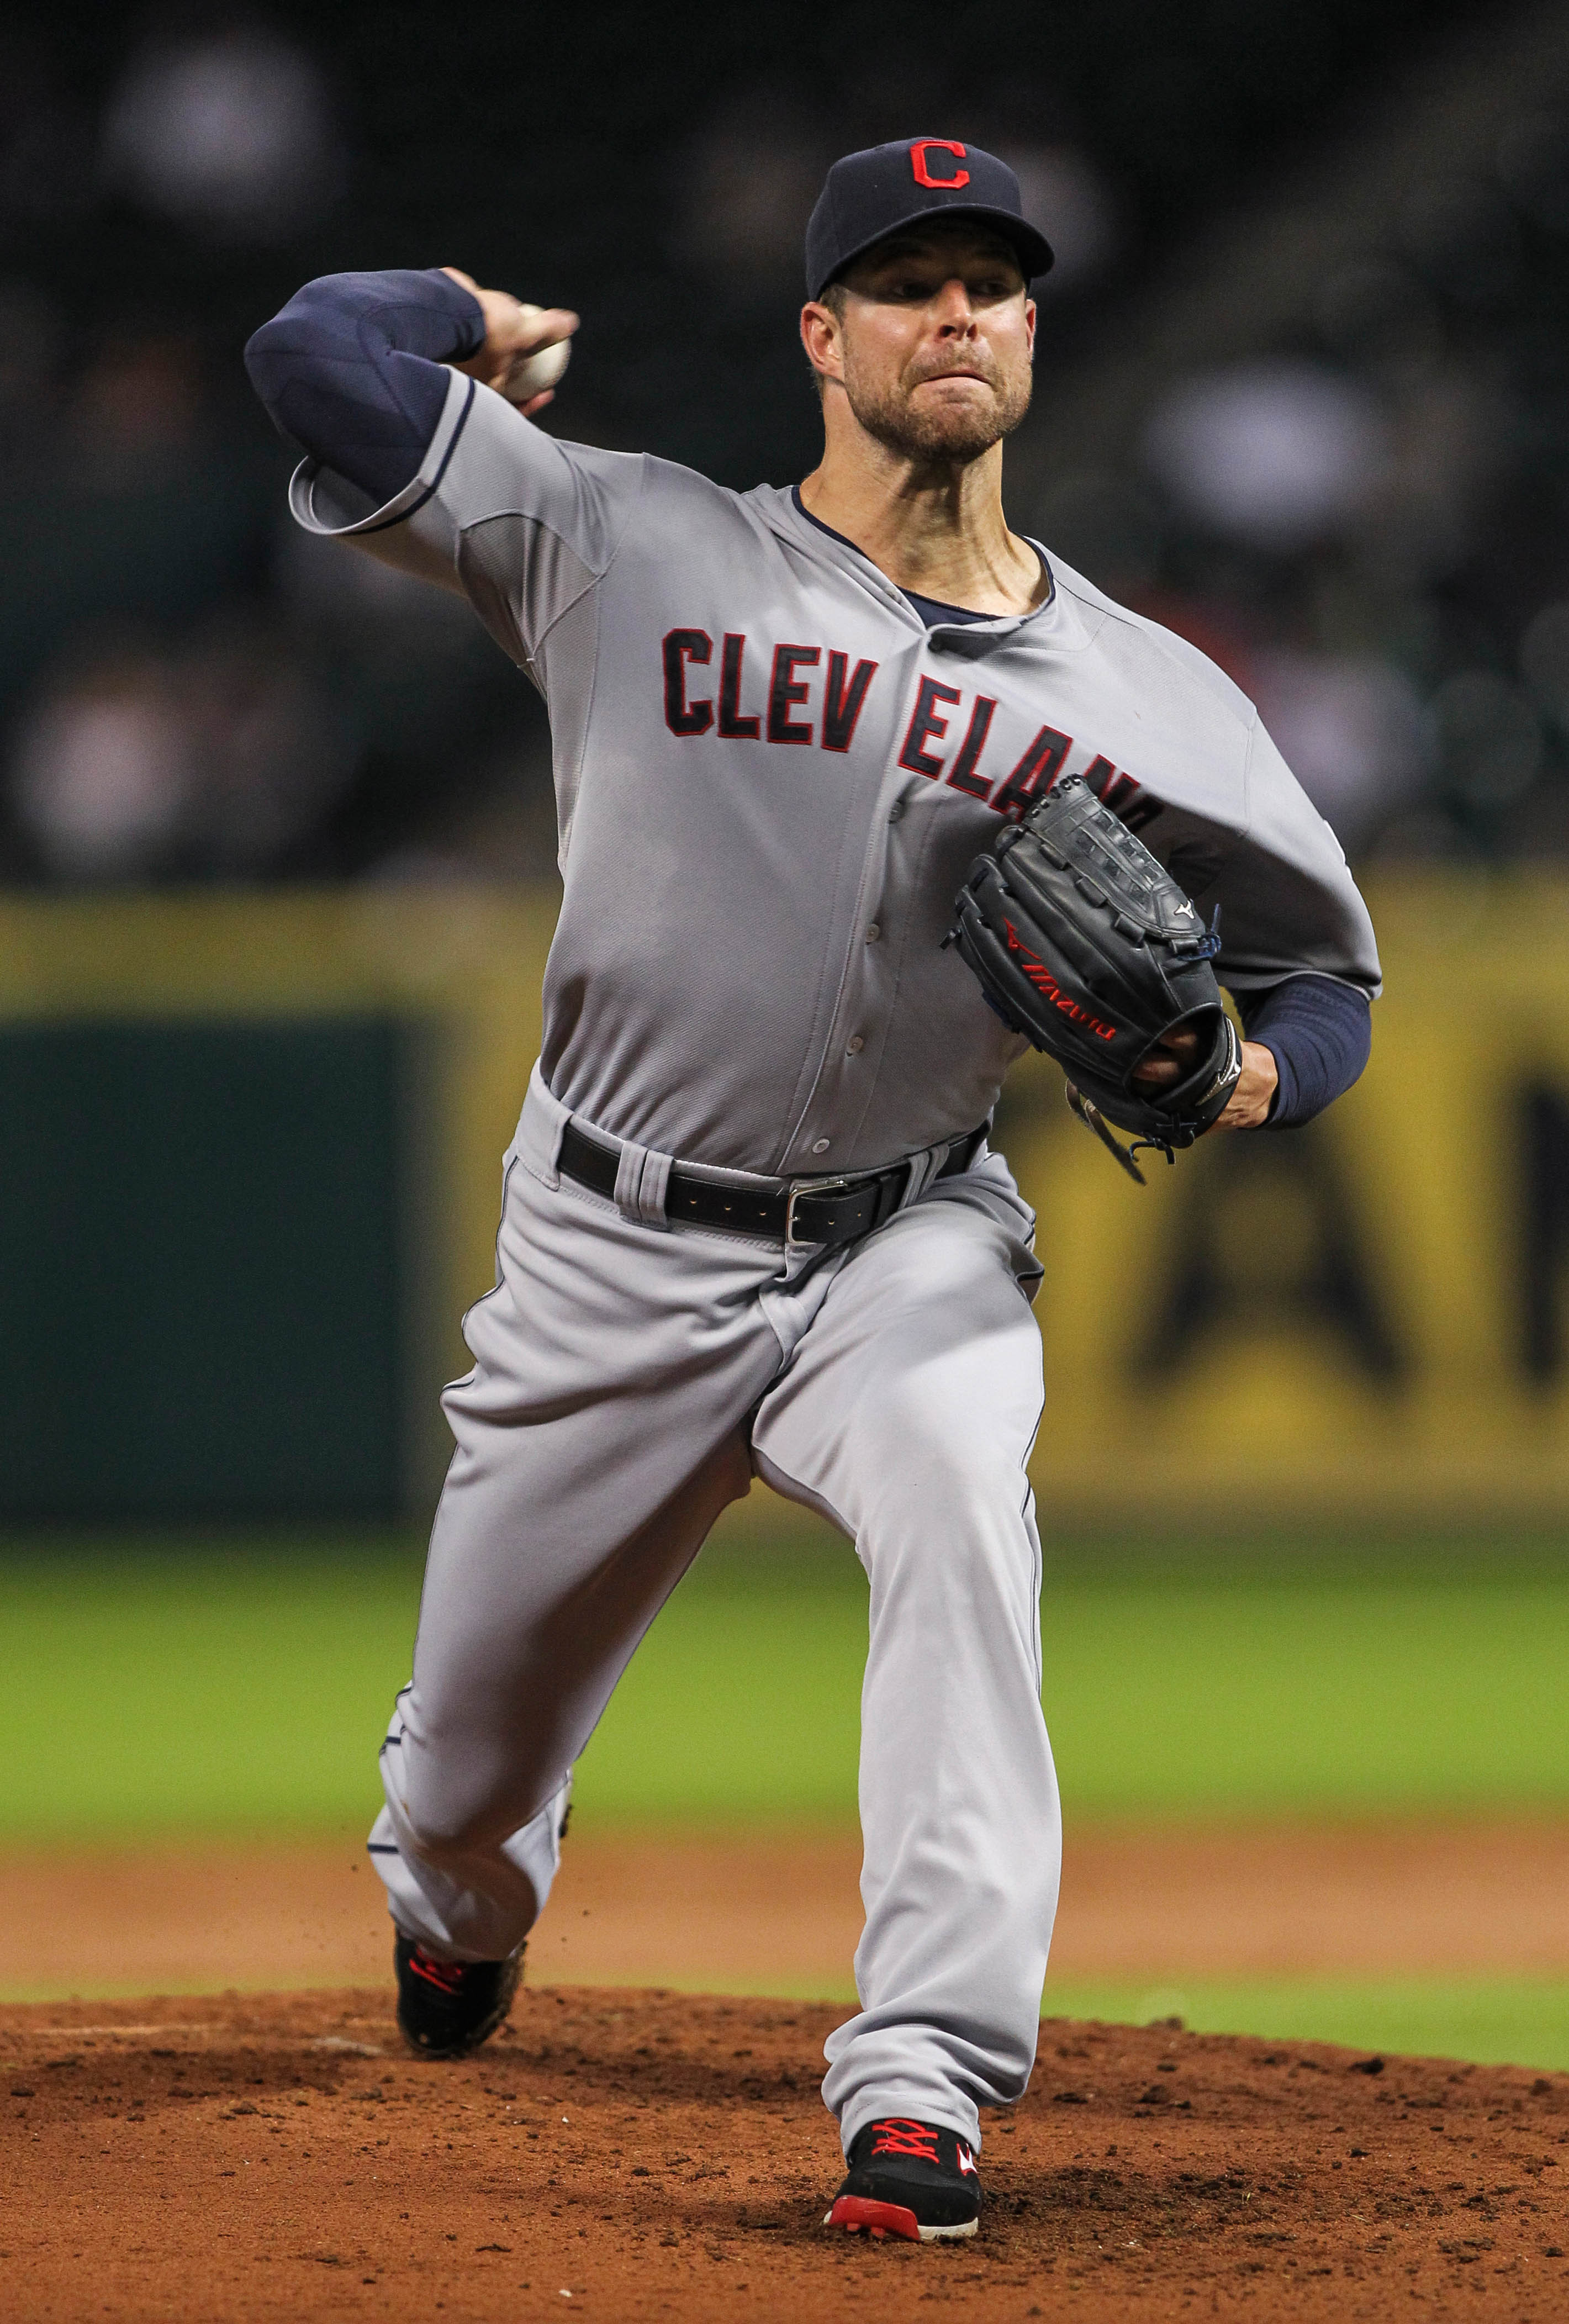 how tall is cory kluber